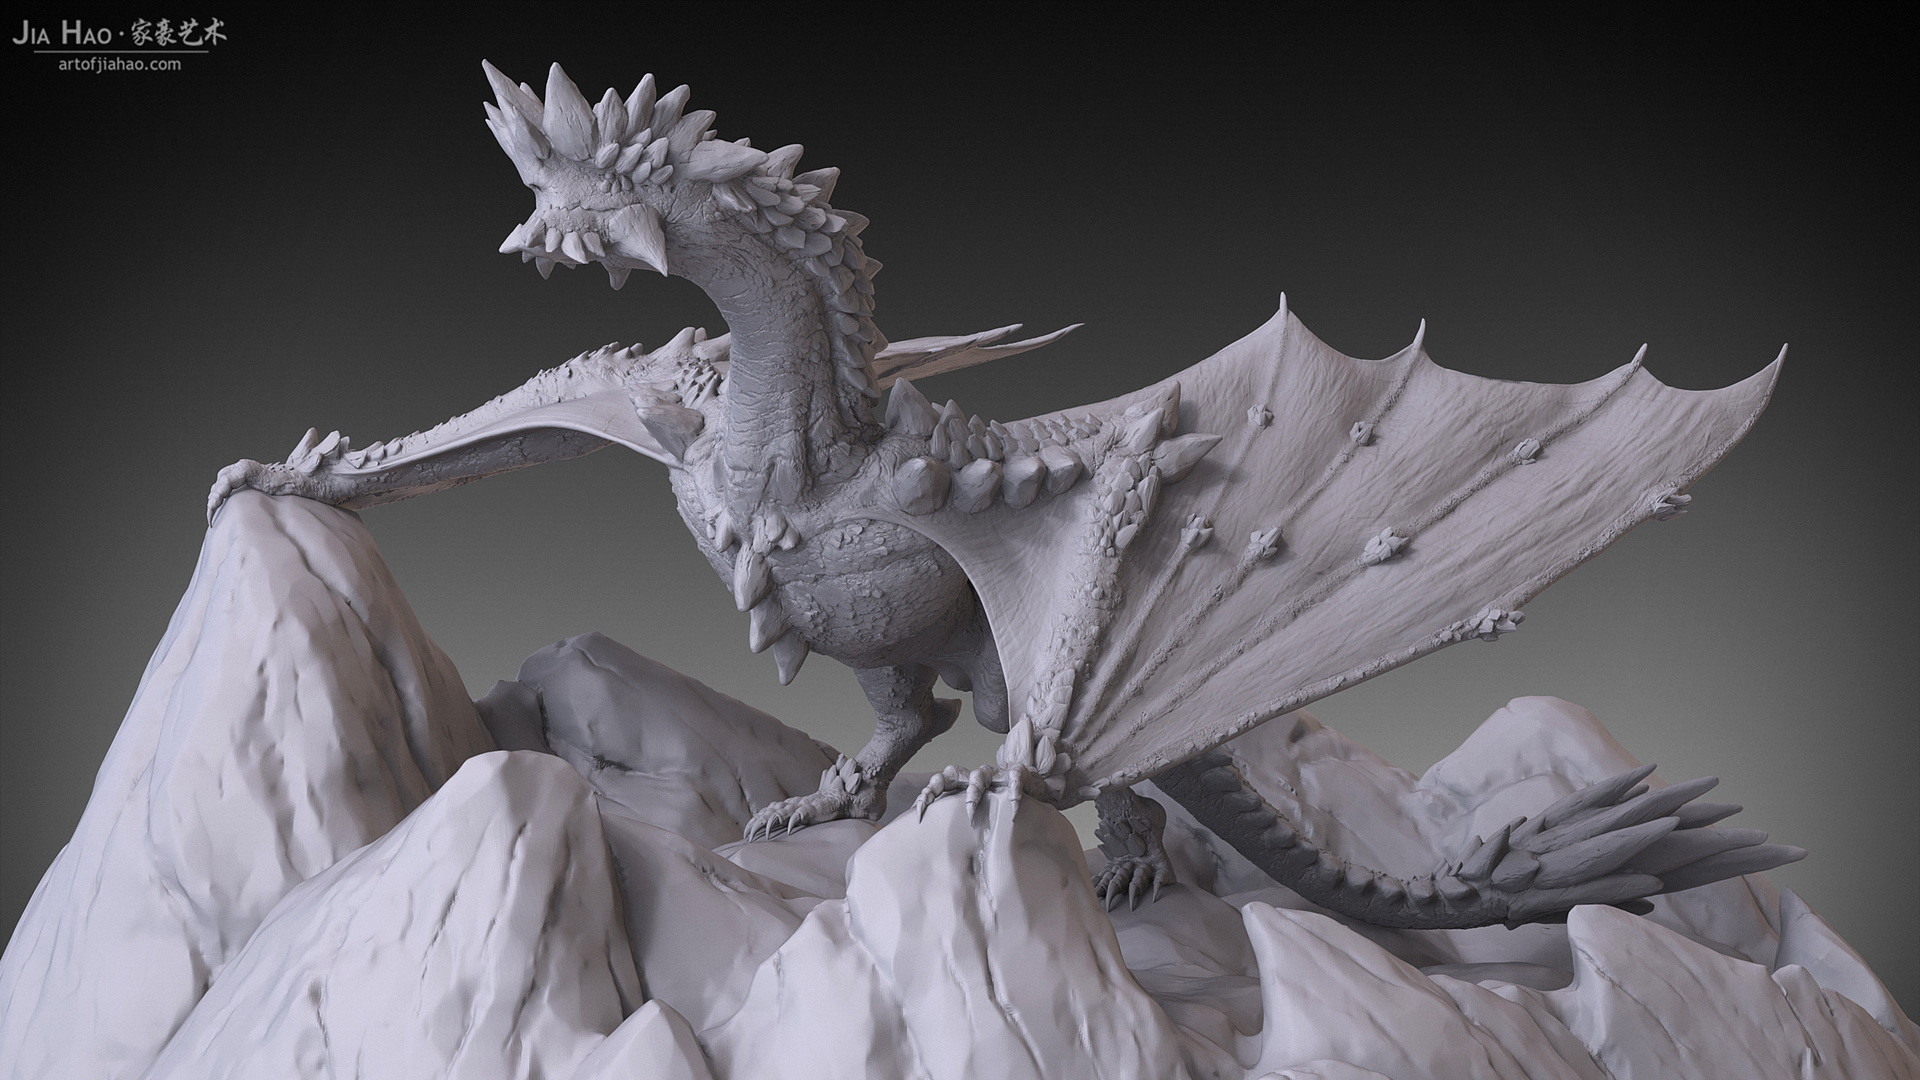 Jia hao 2017 rockdragon digitalsculpting 01